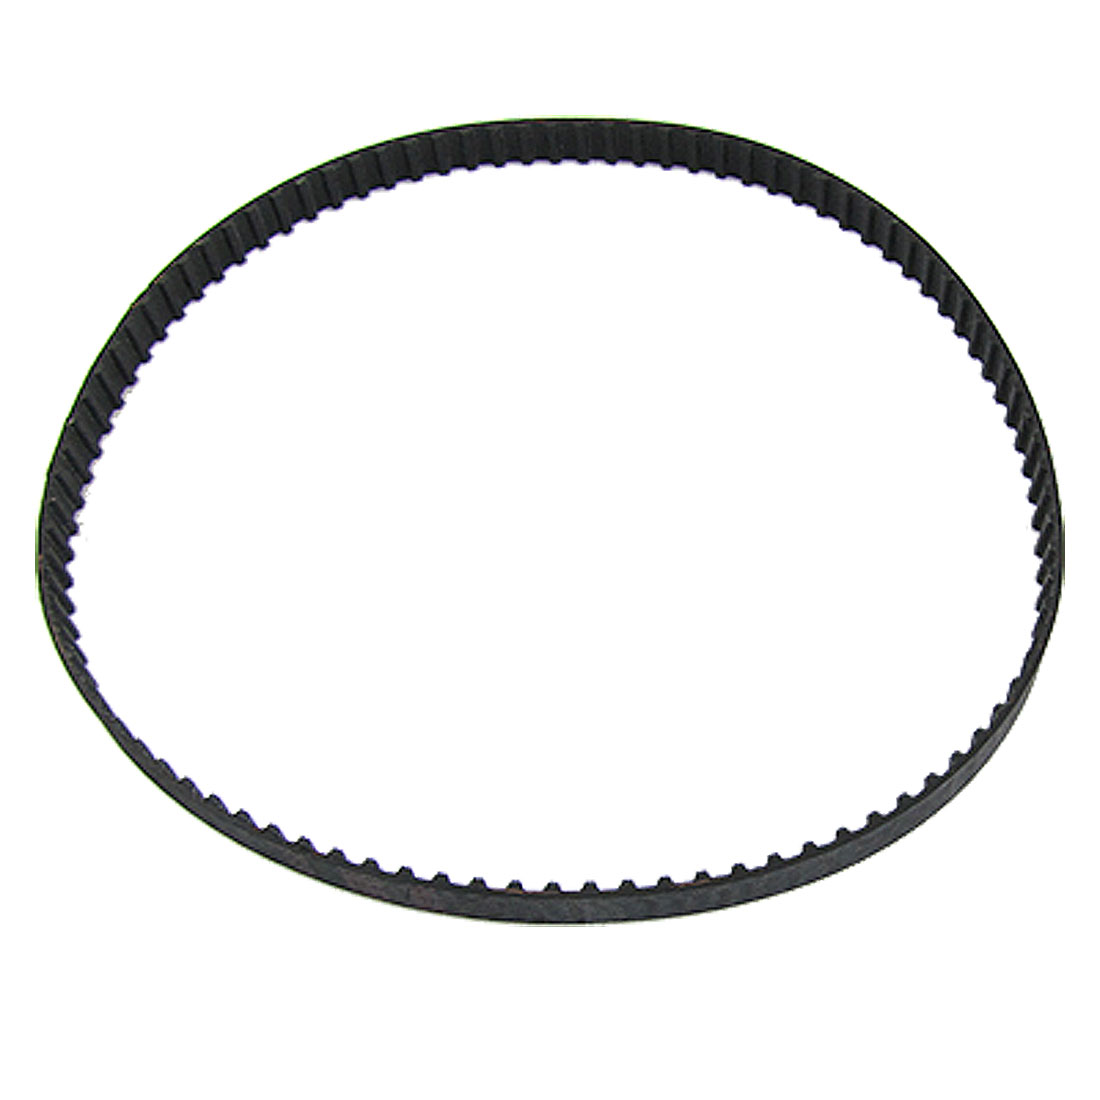 188XL 94 Teeth 10mm Width 5.08mm Pitch Black Synchronous Timing Belt